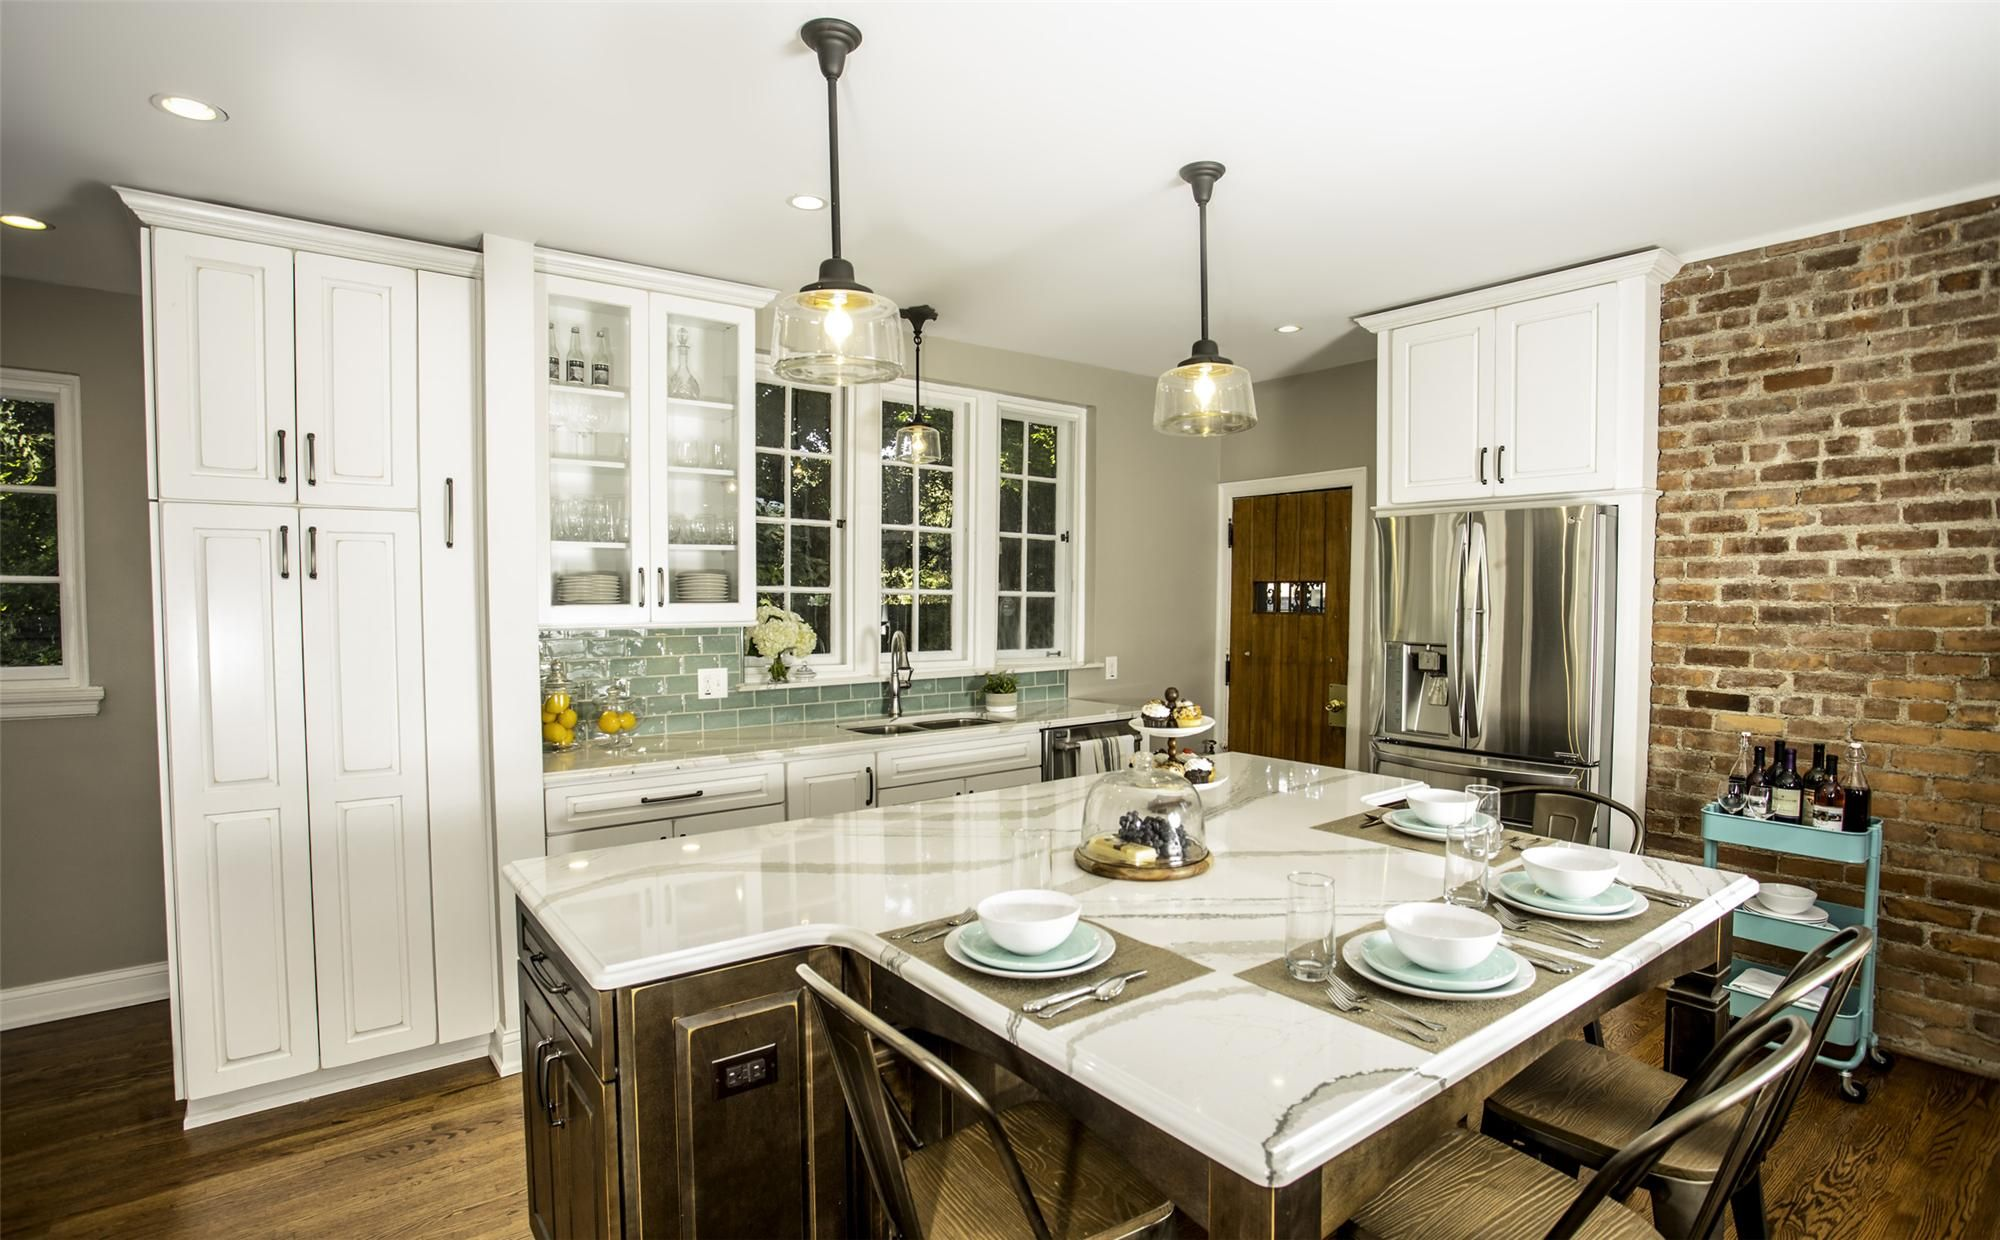 Legacy Crafted Cabinets Kcma Certified Cabinets Kitchen Cabinet Inspiration Kitchen Inspirations Kitchen